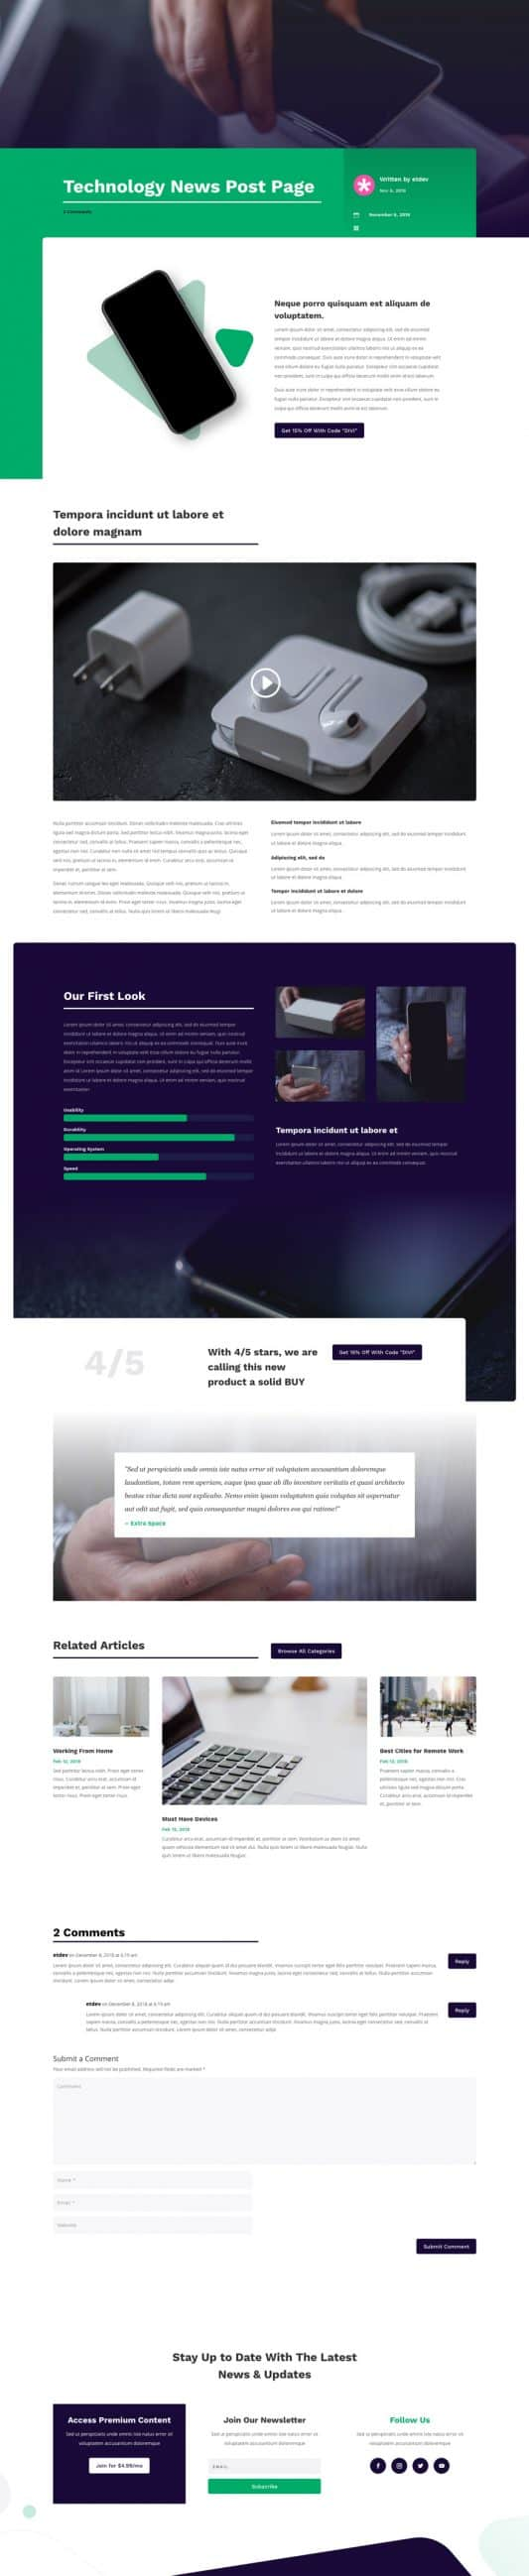 Technology News Web Design 6